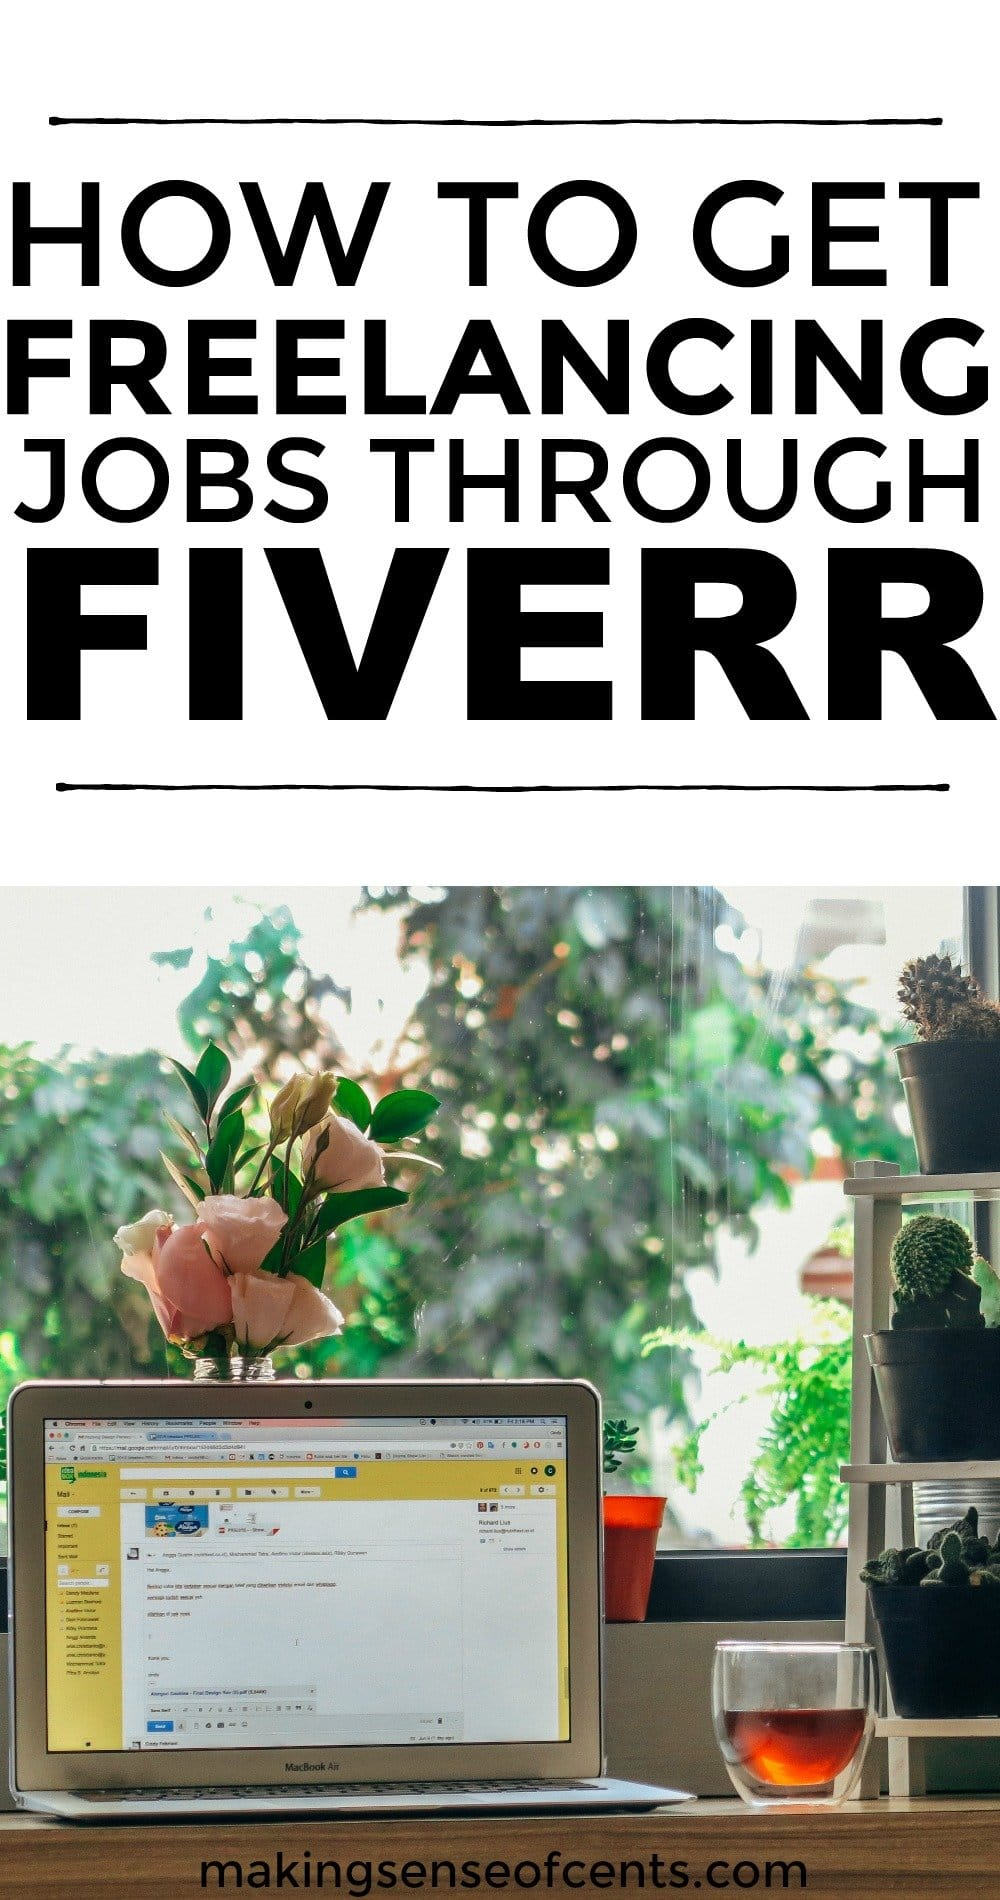 Find out how to get freelancing jobs through FIVERR. #freelancing